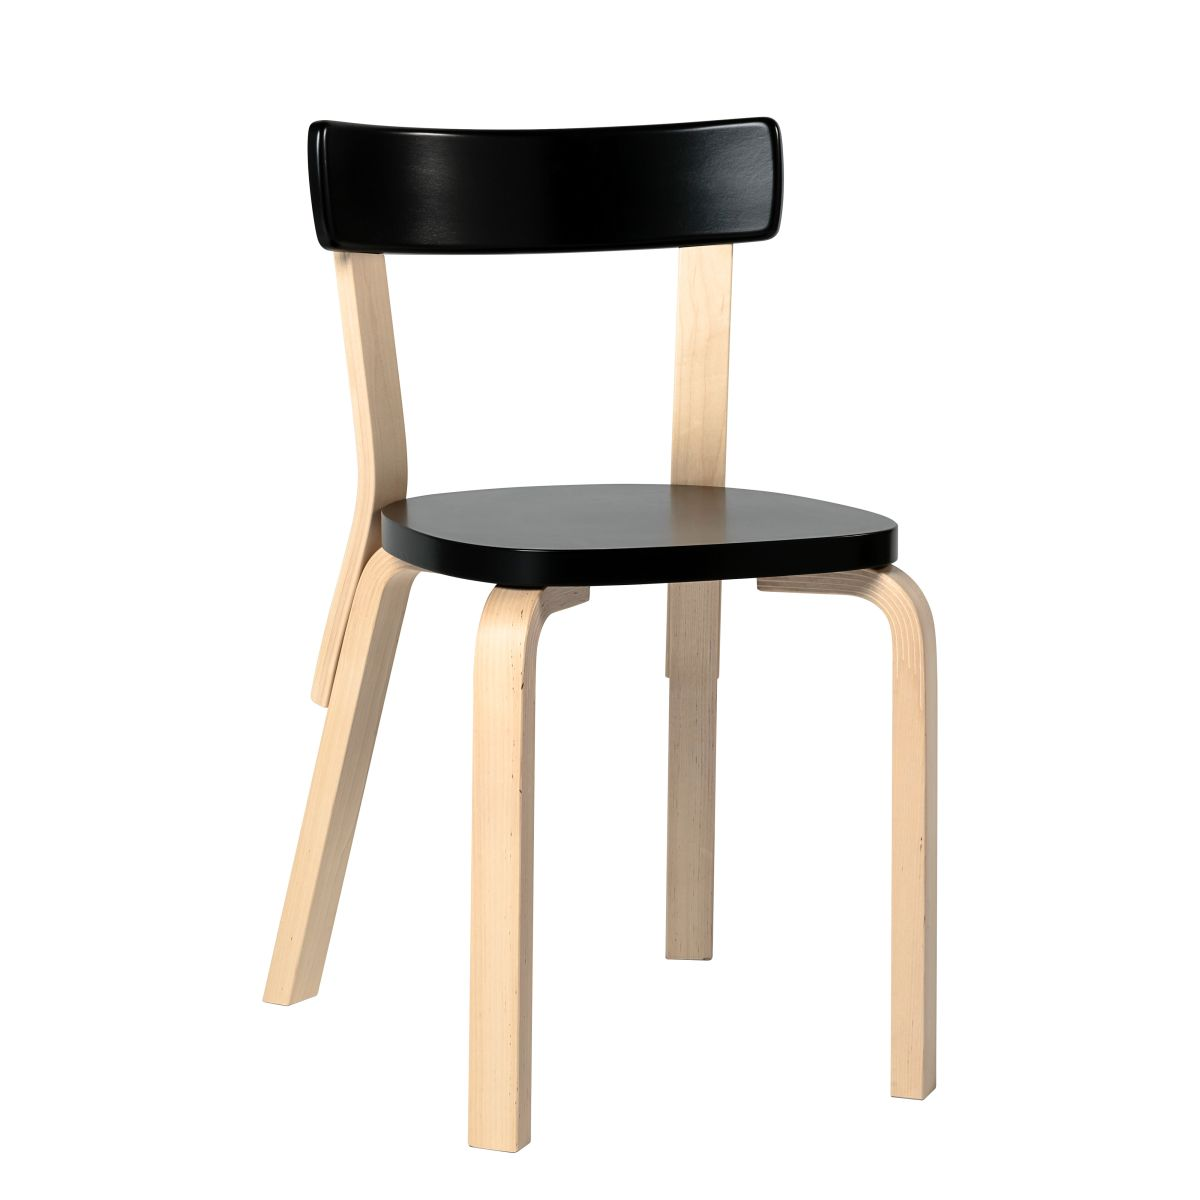 Chair 69 black lacquer seat